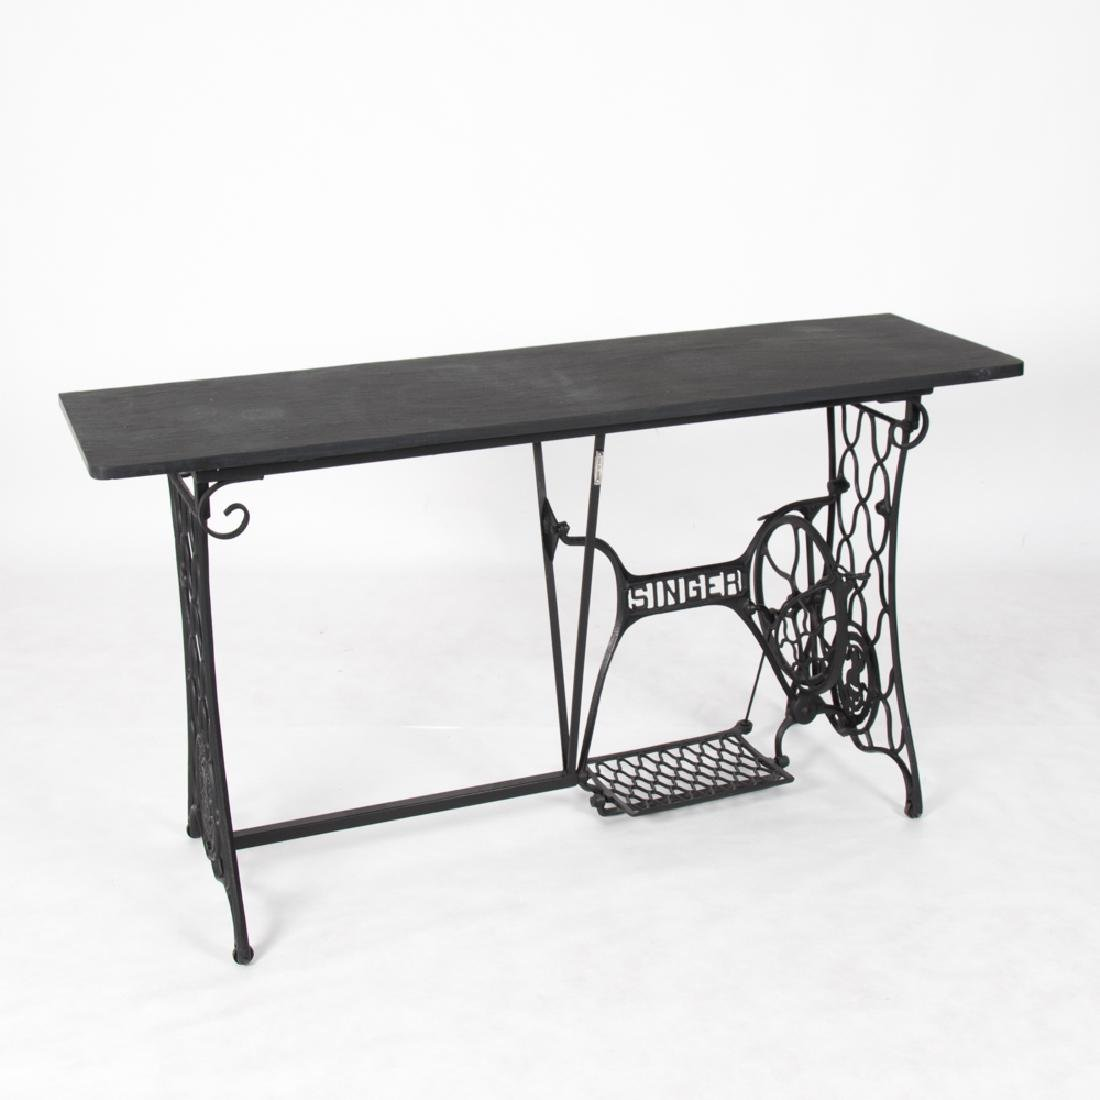 An Eric St. Regis Wrought Metal and Slate Console